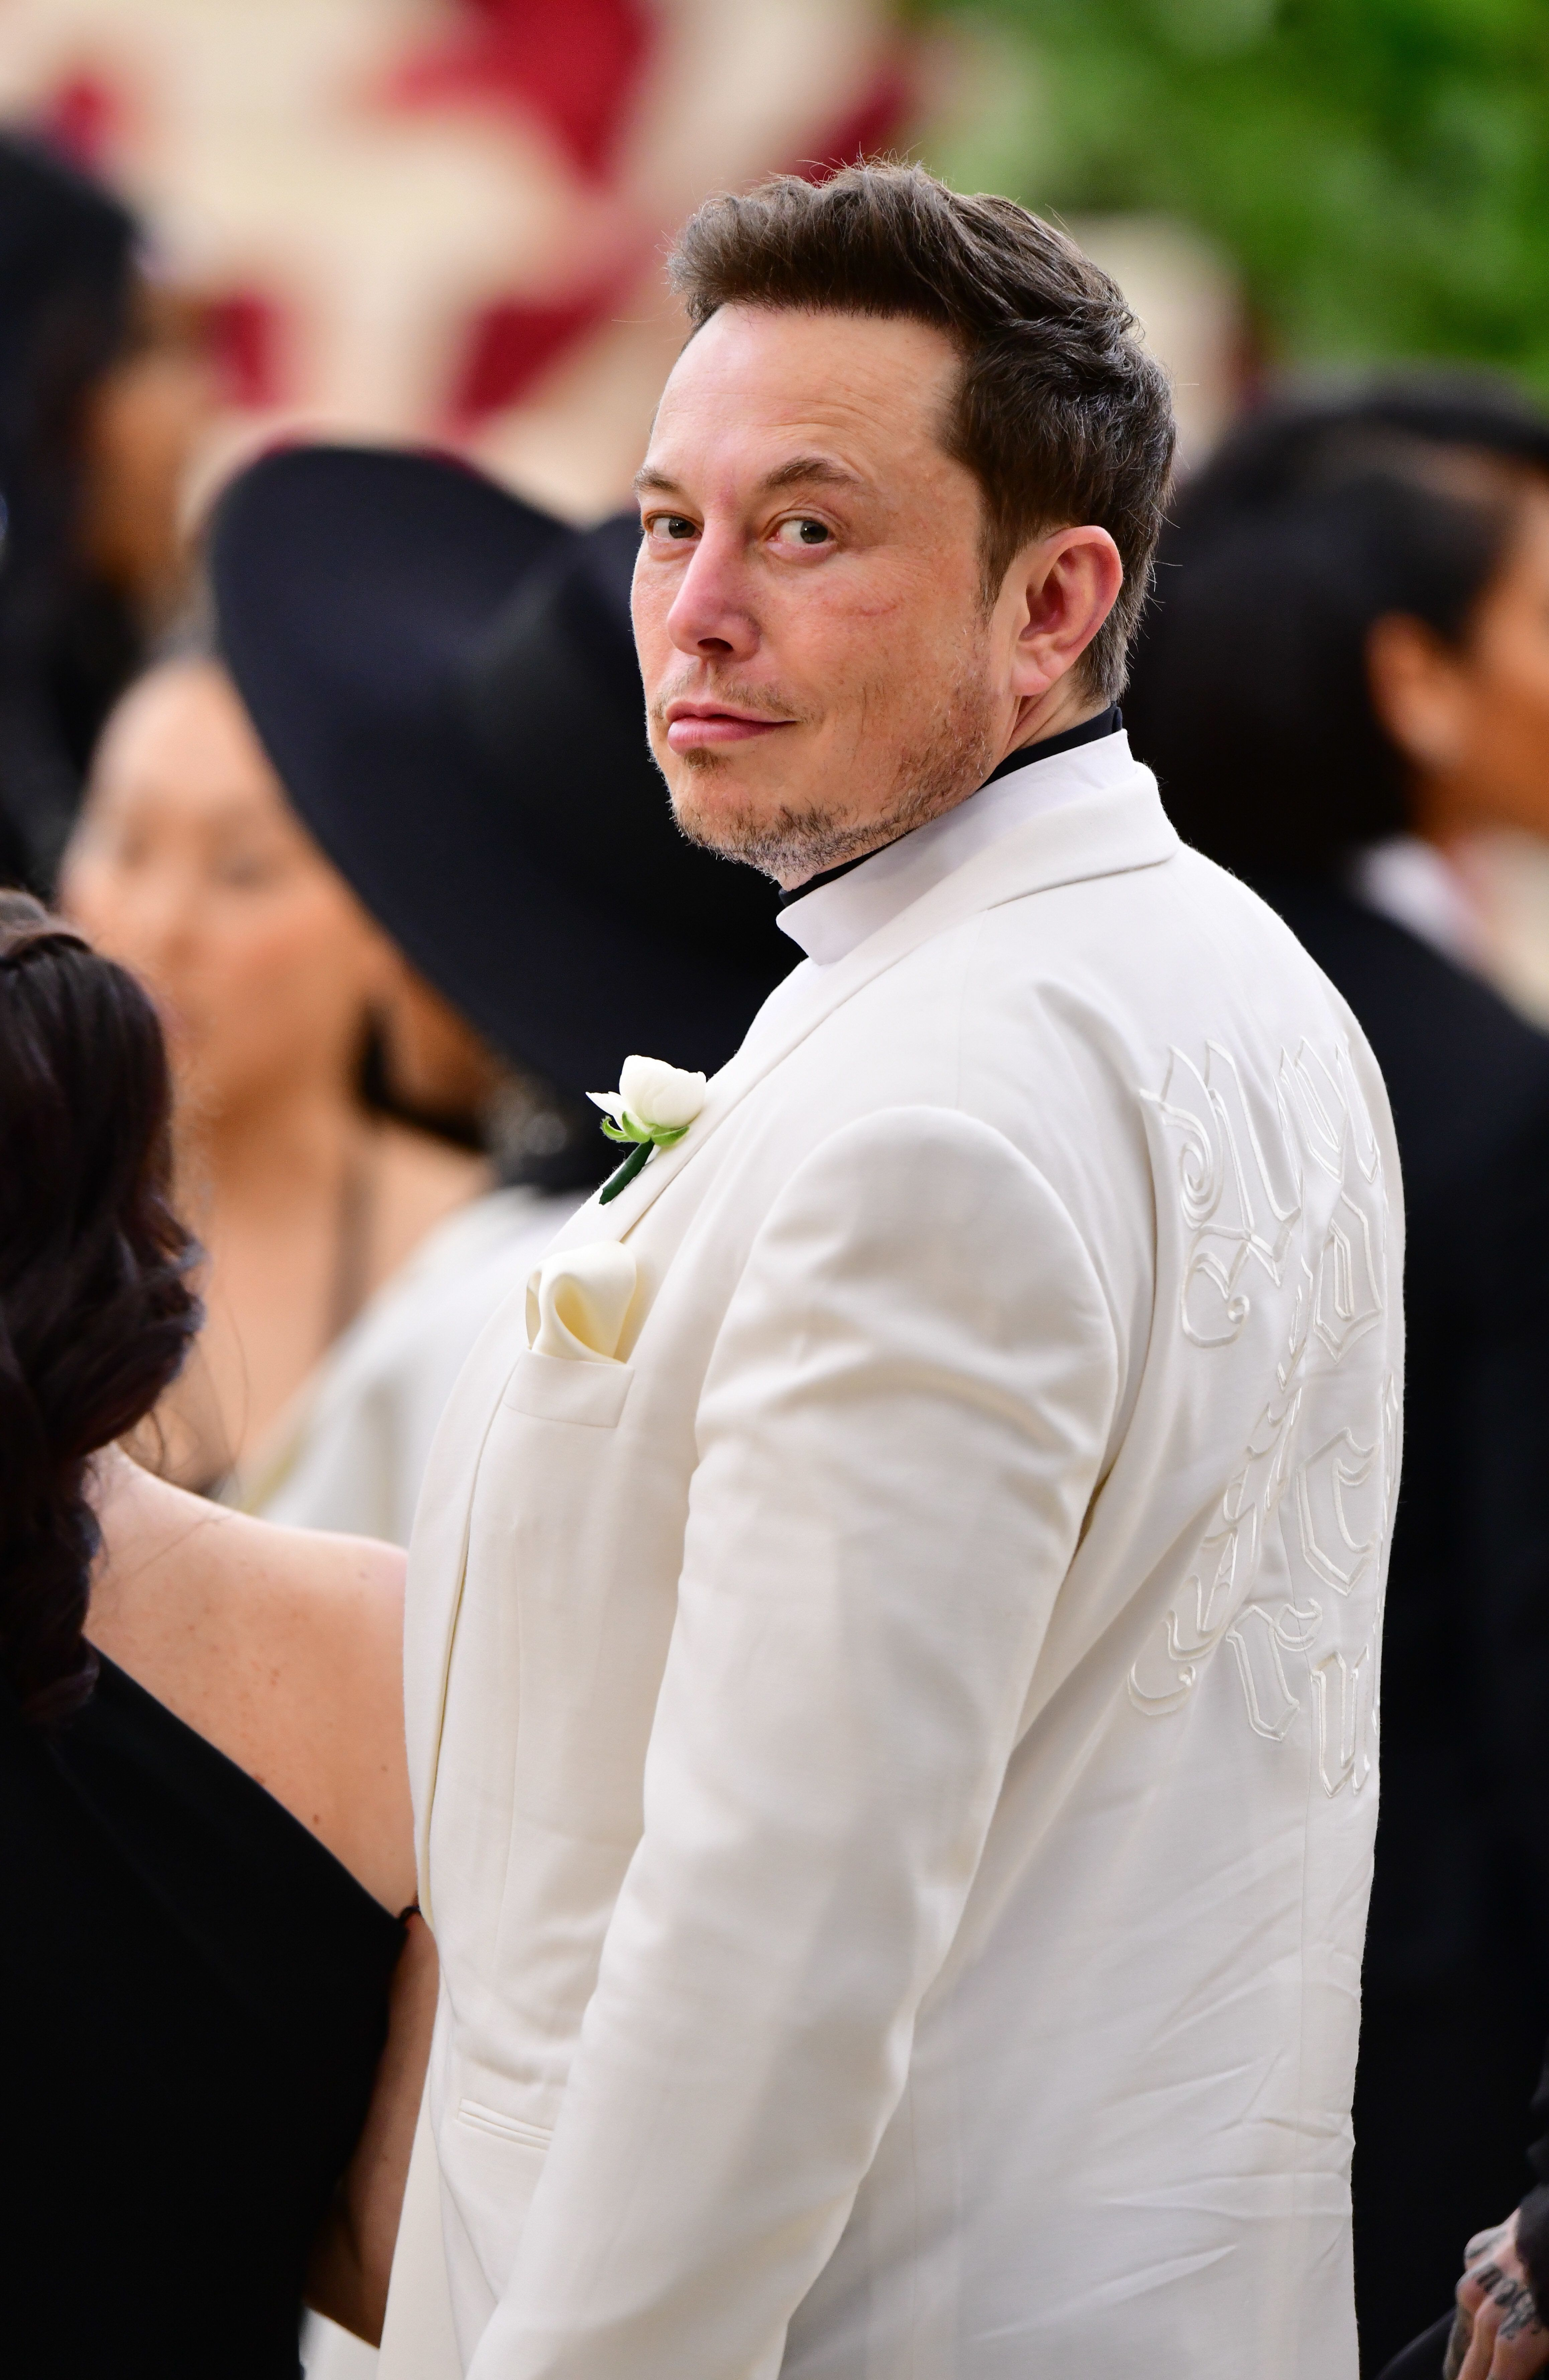 Elon Musk Lashes Out At Thai Cave Rescuer, Baselessly Calls Him A 'Pedo